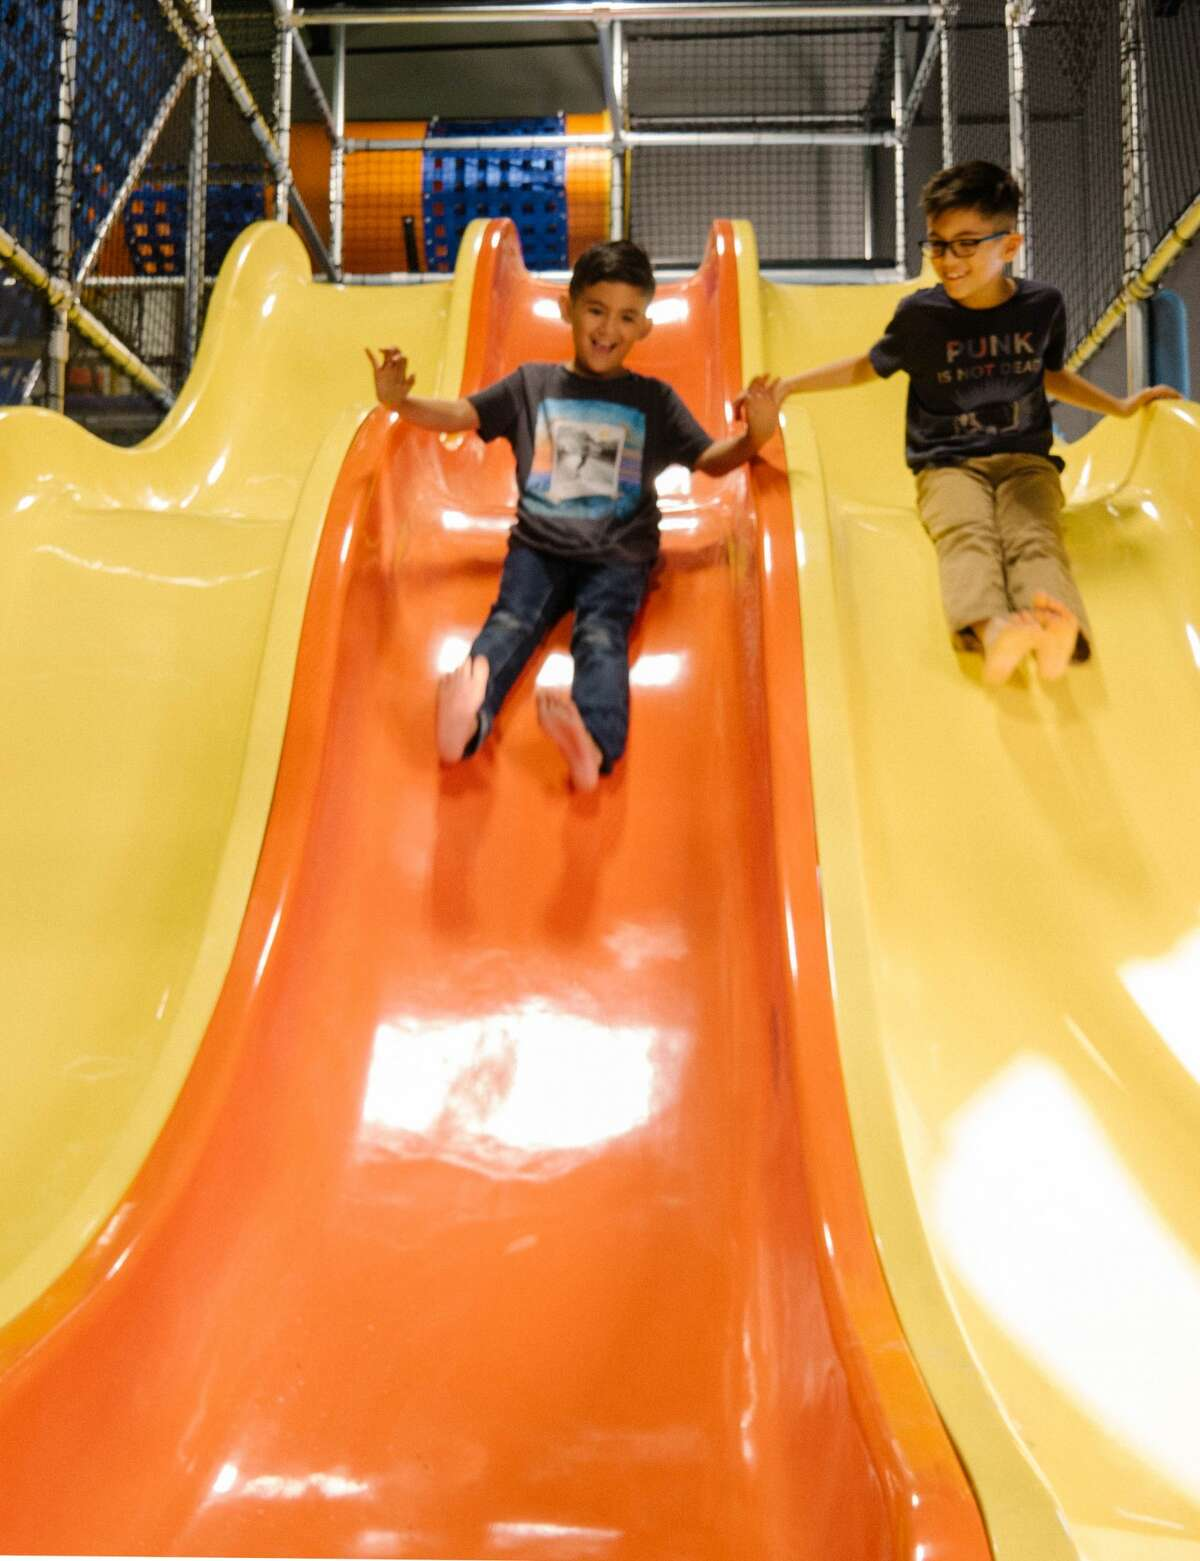 Photos show a sneak peek of Hang Indoor Playground.